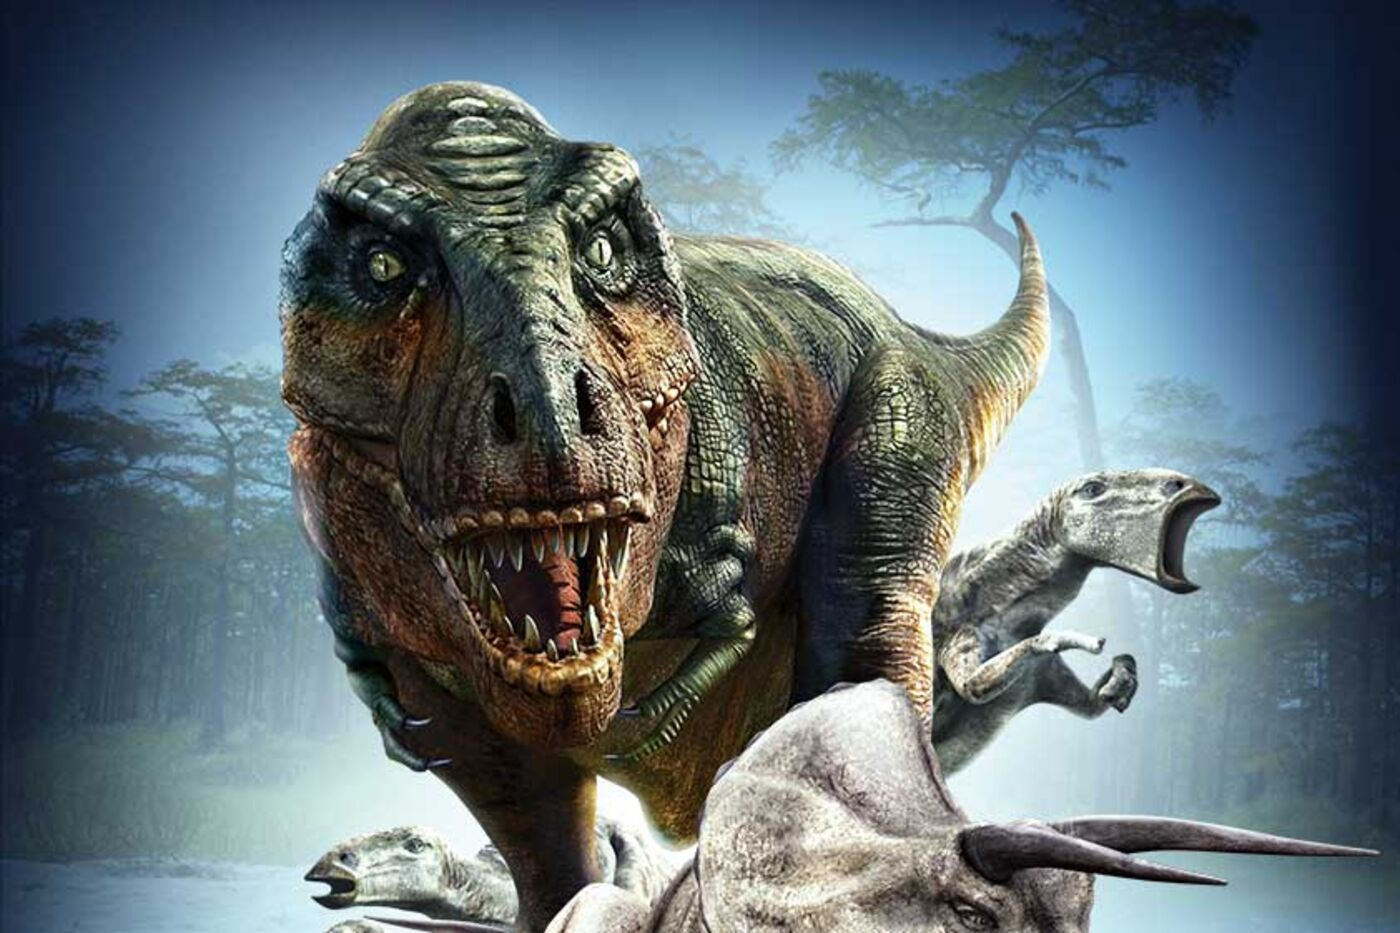 Illustration of a fierce-looking T. rex showing its teeth, surrounded by other dinosaurs.